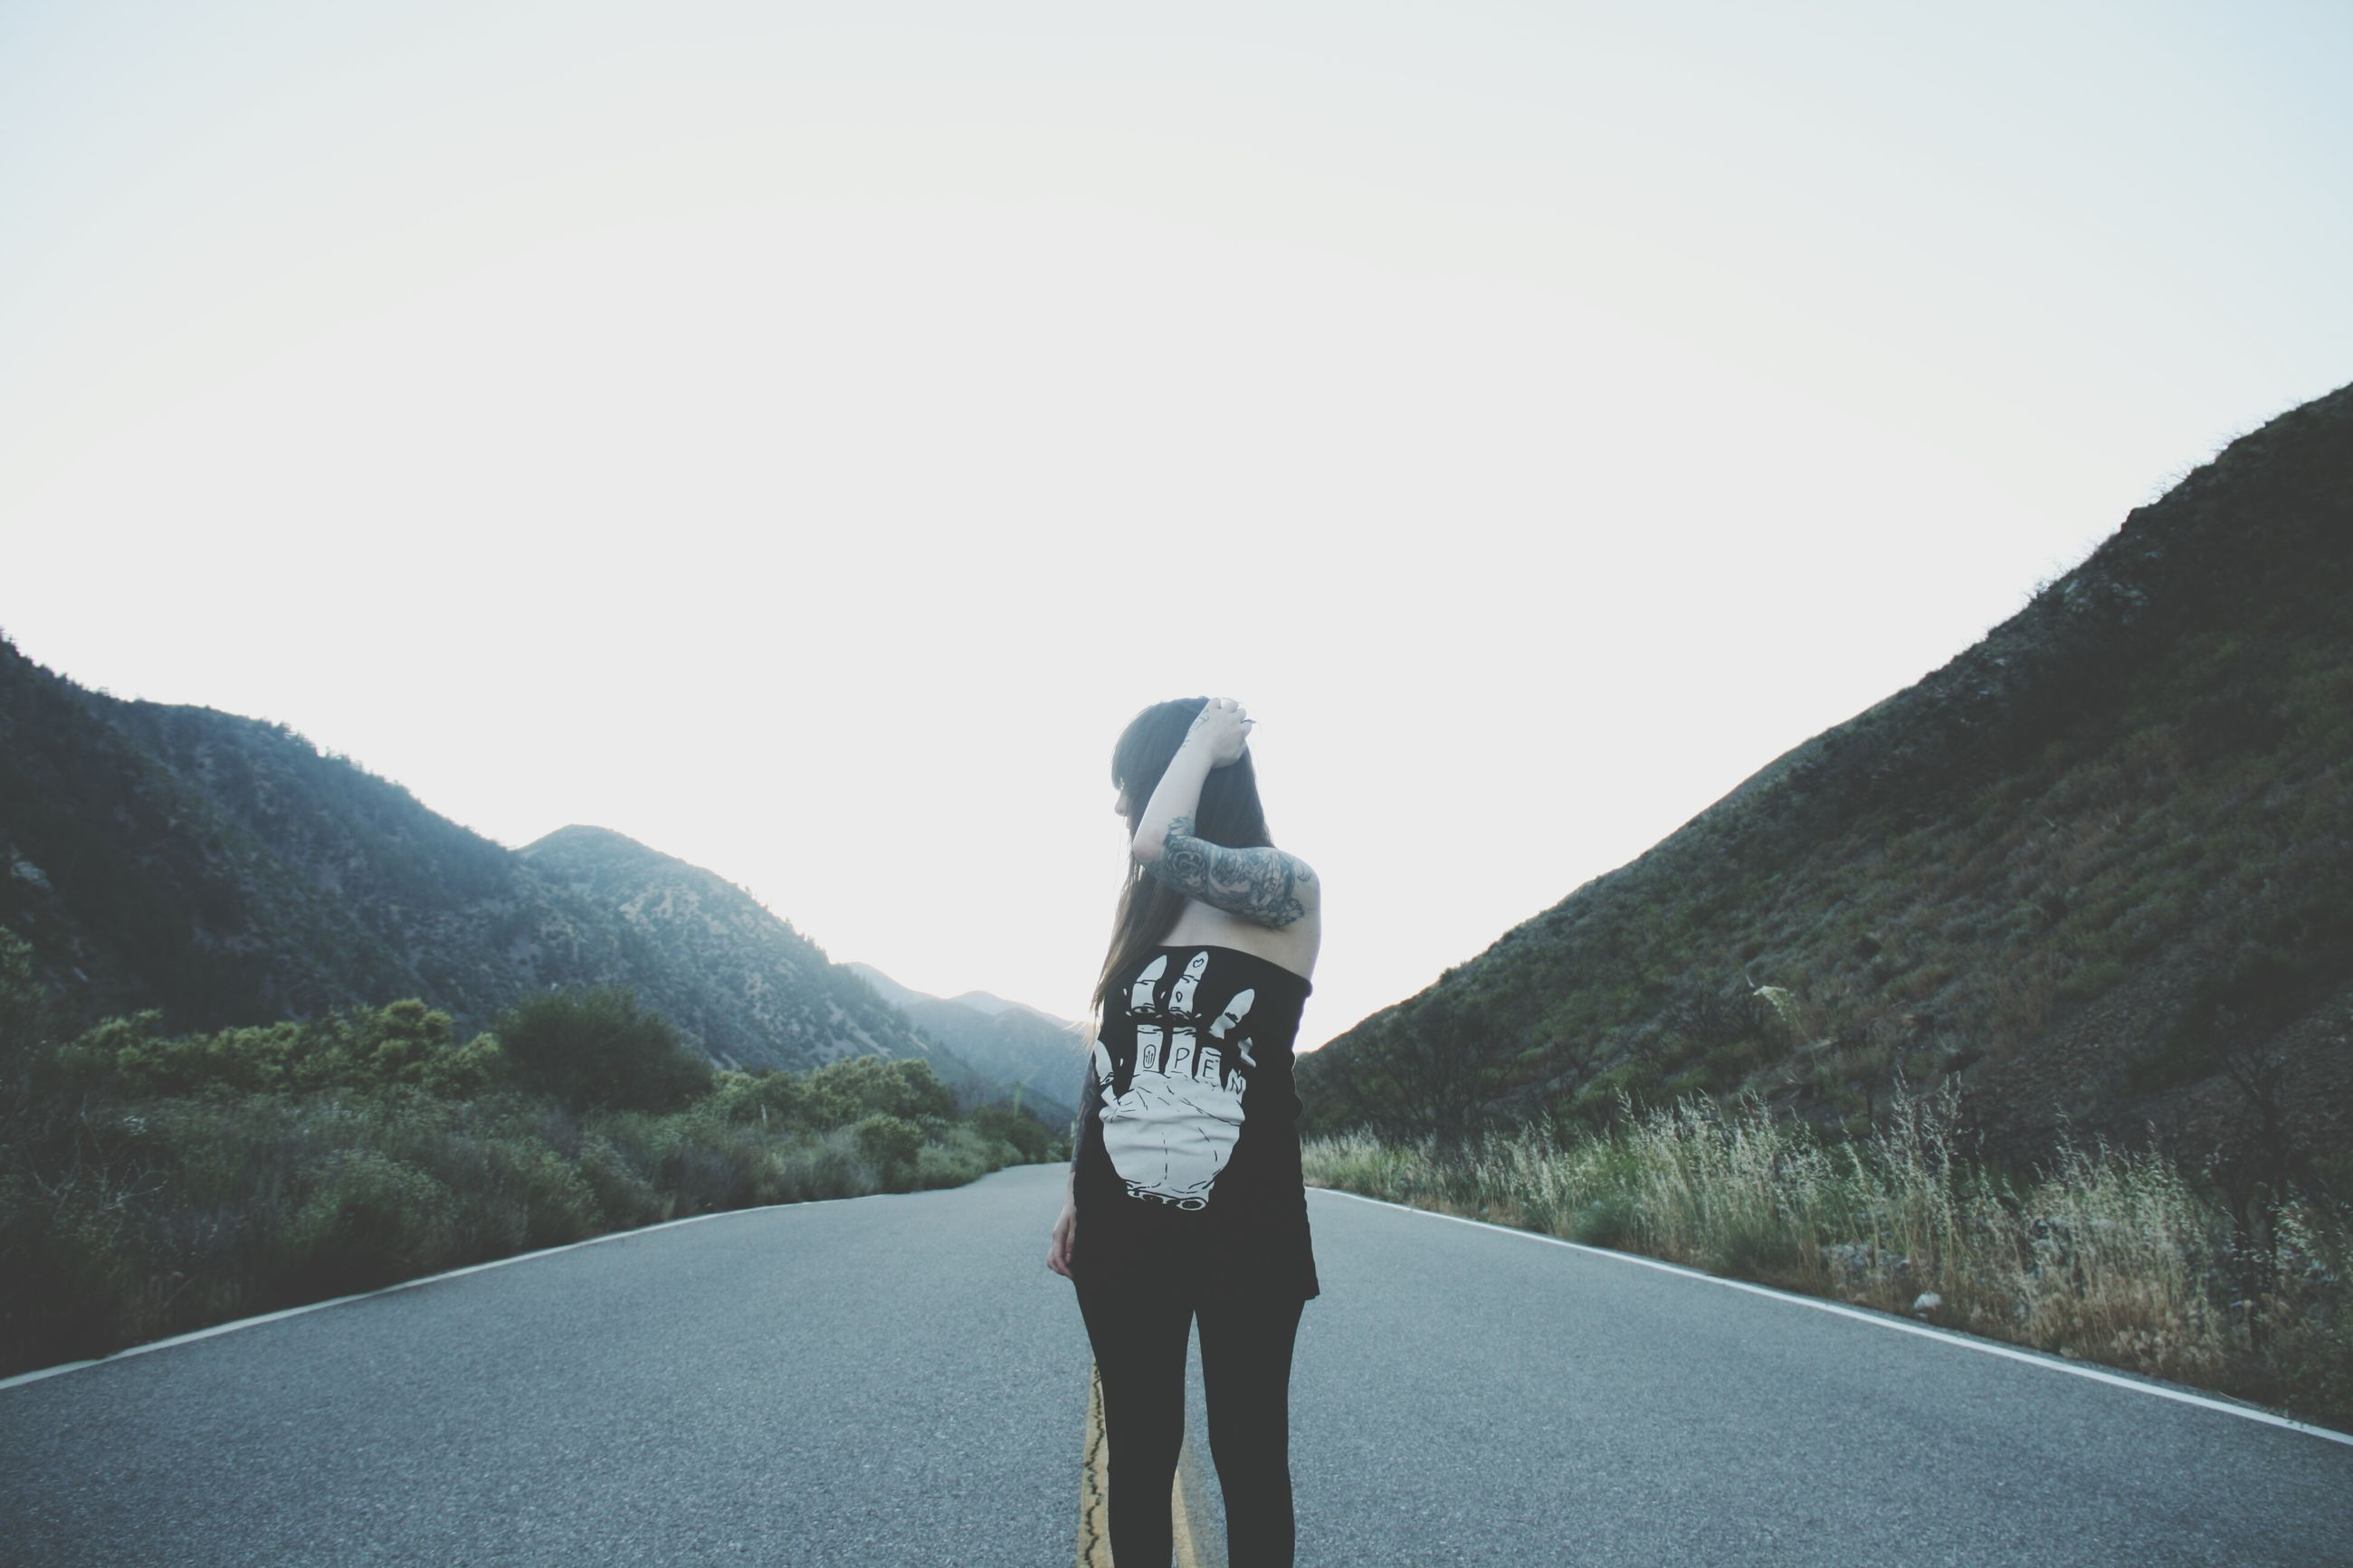 rear view, road, mountain, clear sky, real people, outdoors, one person, landscape, day, nature, walking, lifestyles, leisure activity, full length, sky, standing, young adult, women, young women, beauty in nature, people